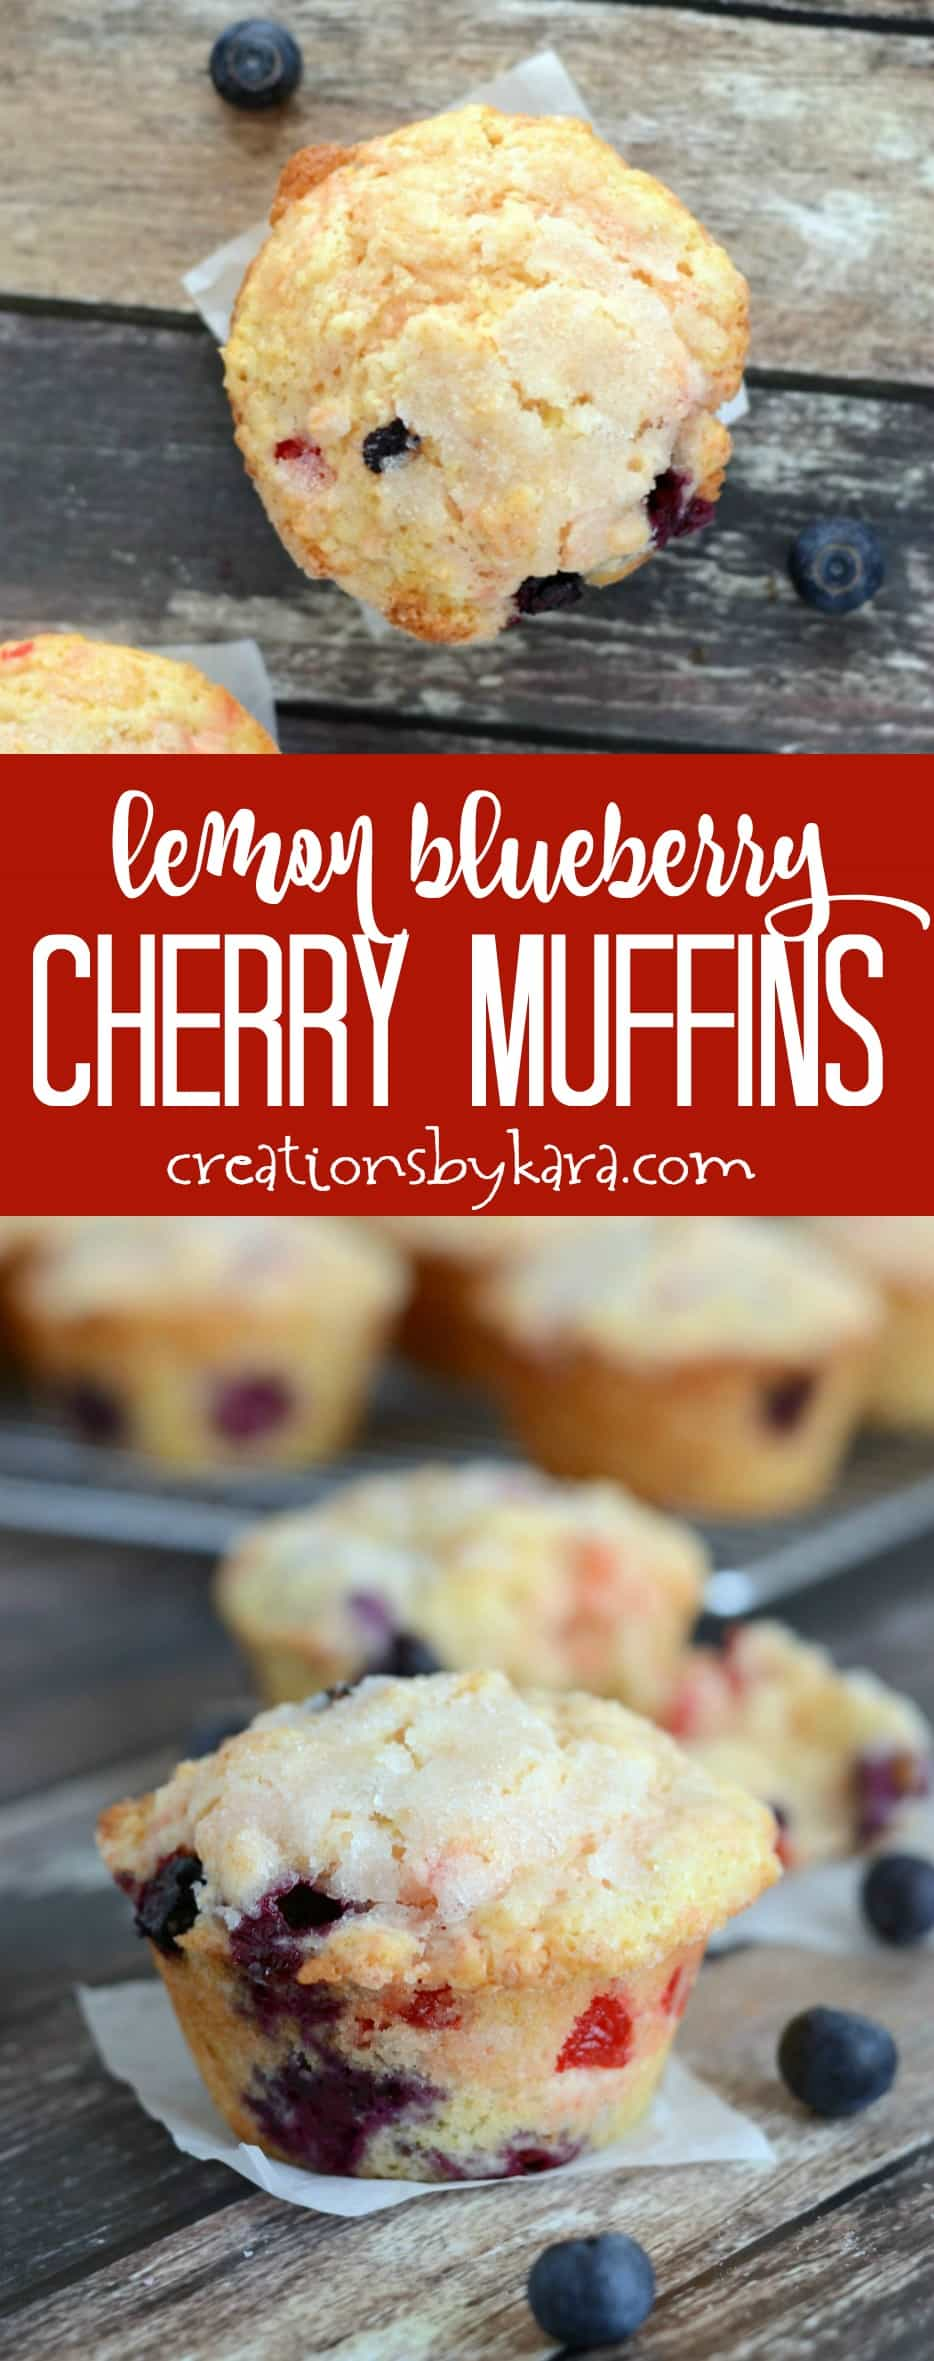 Everyone loves these Lemon Blueberry Cherry Muffins. They are pretty and delicious!